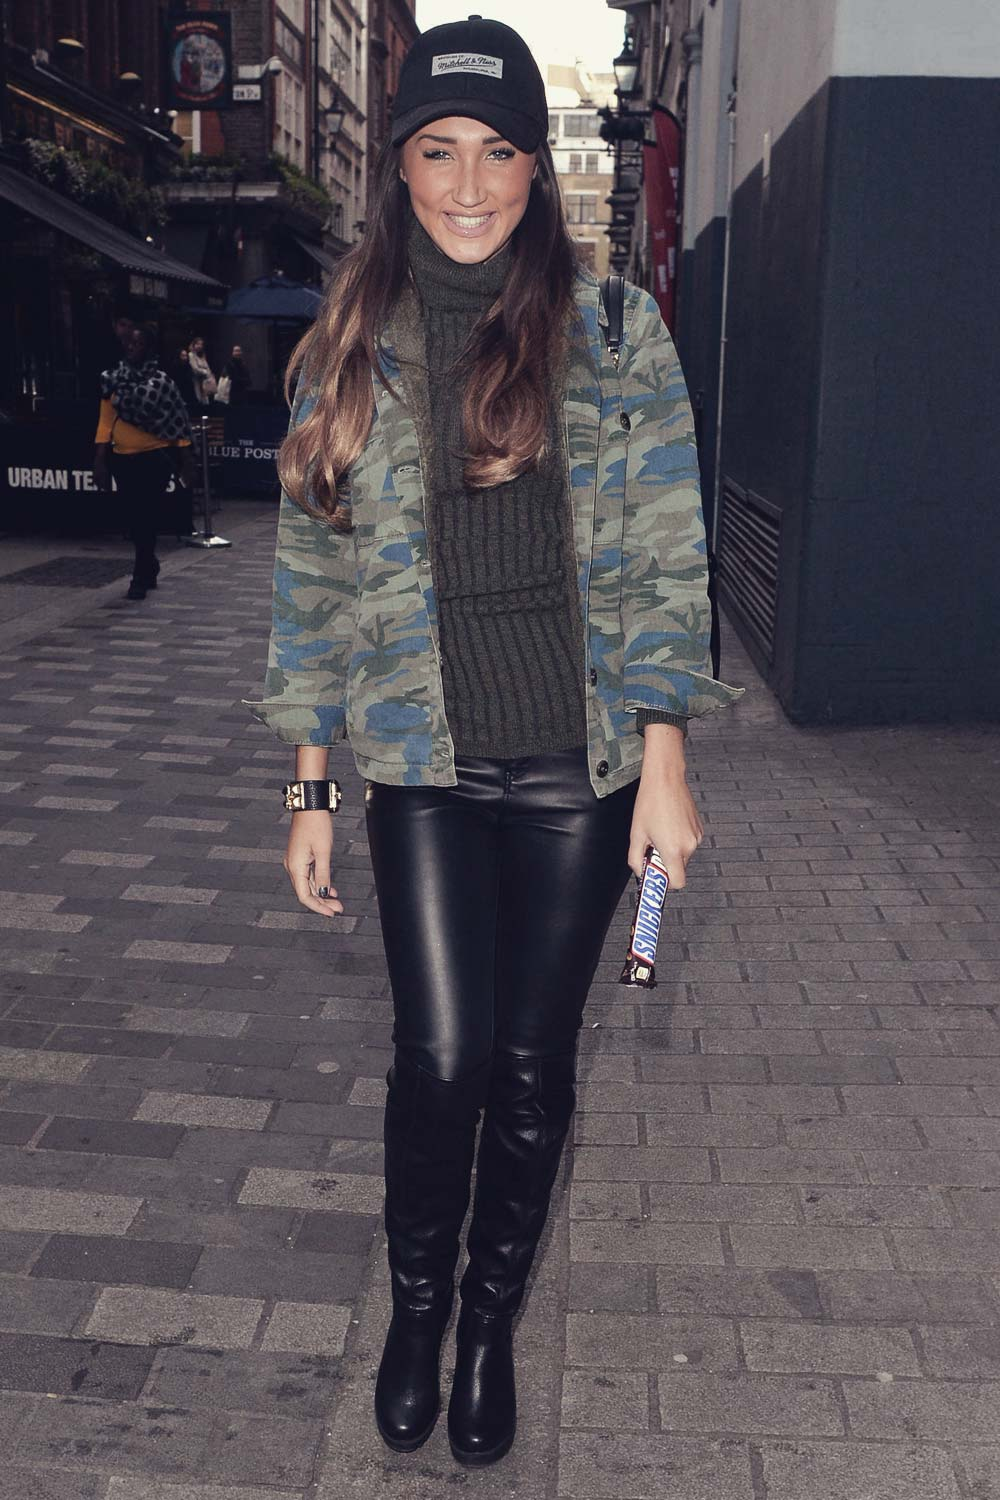 Megan Mckenna out in London